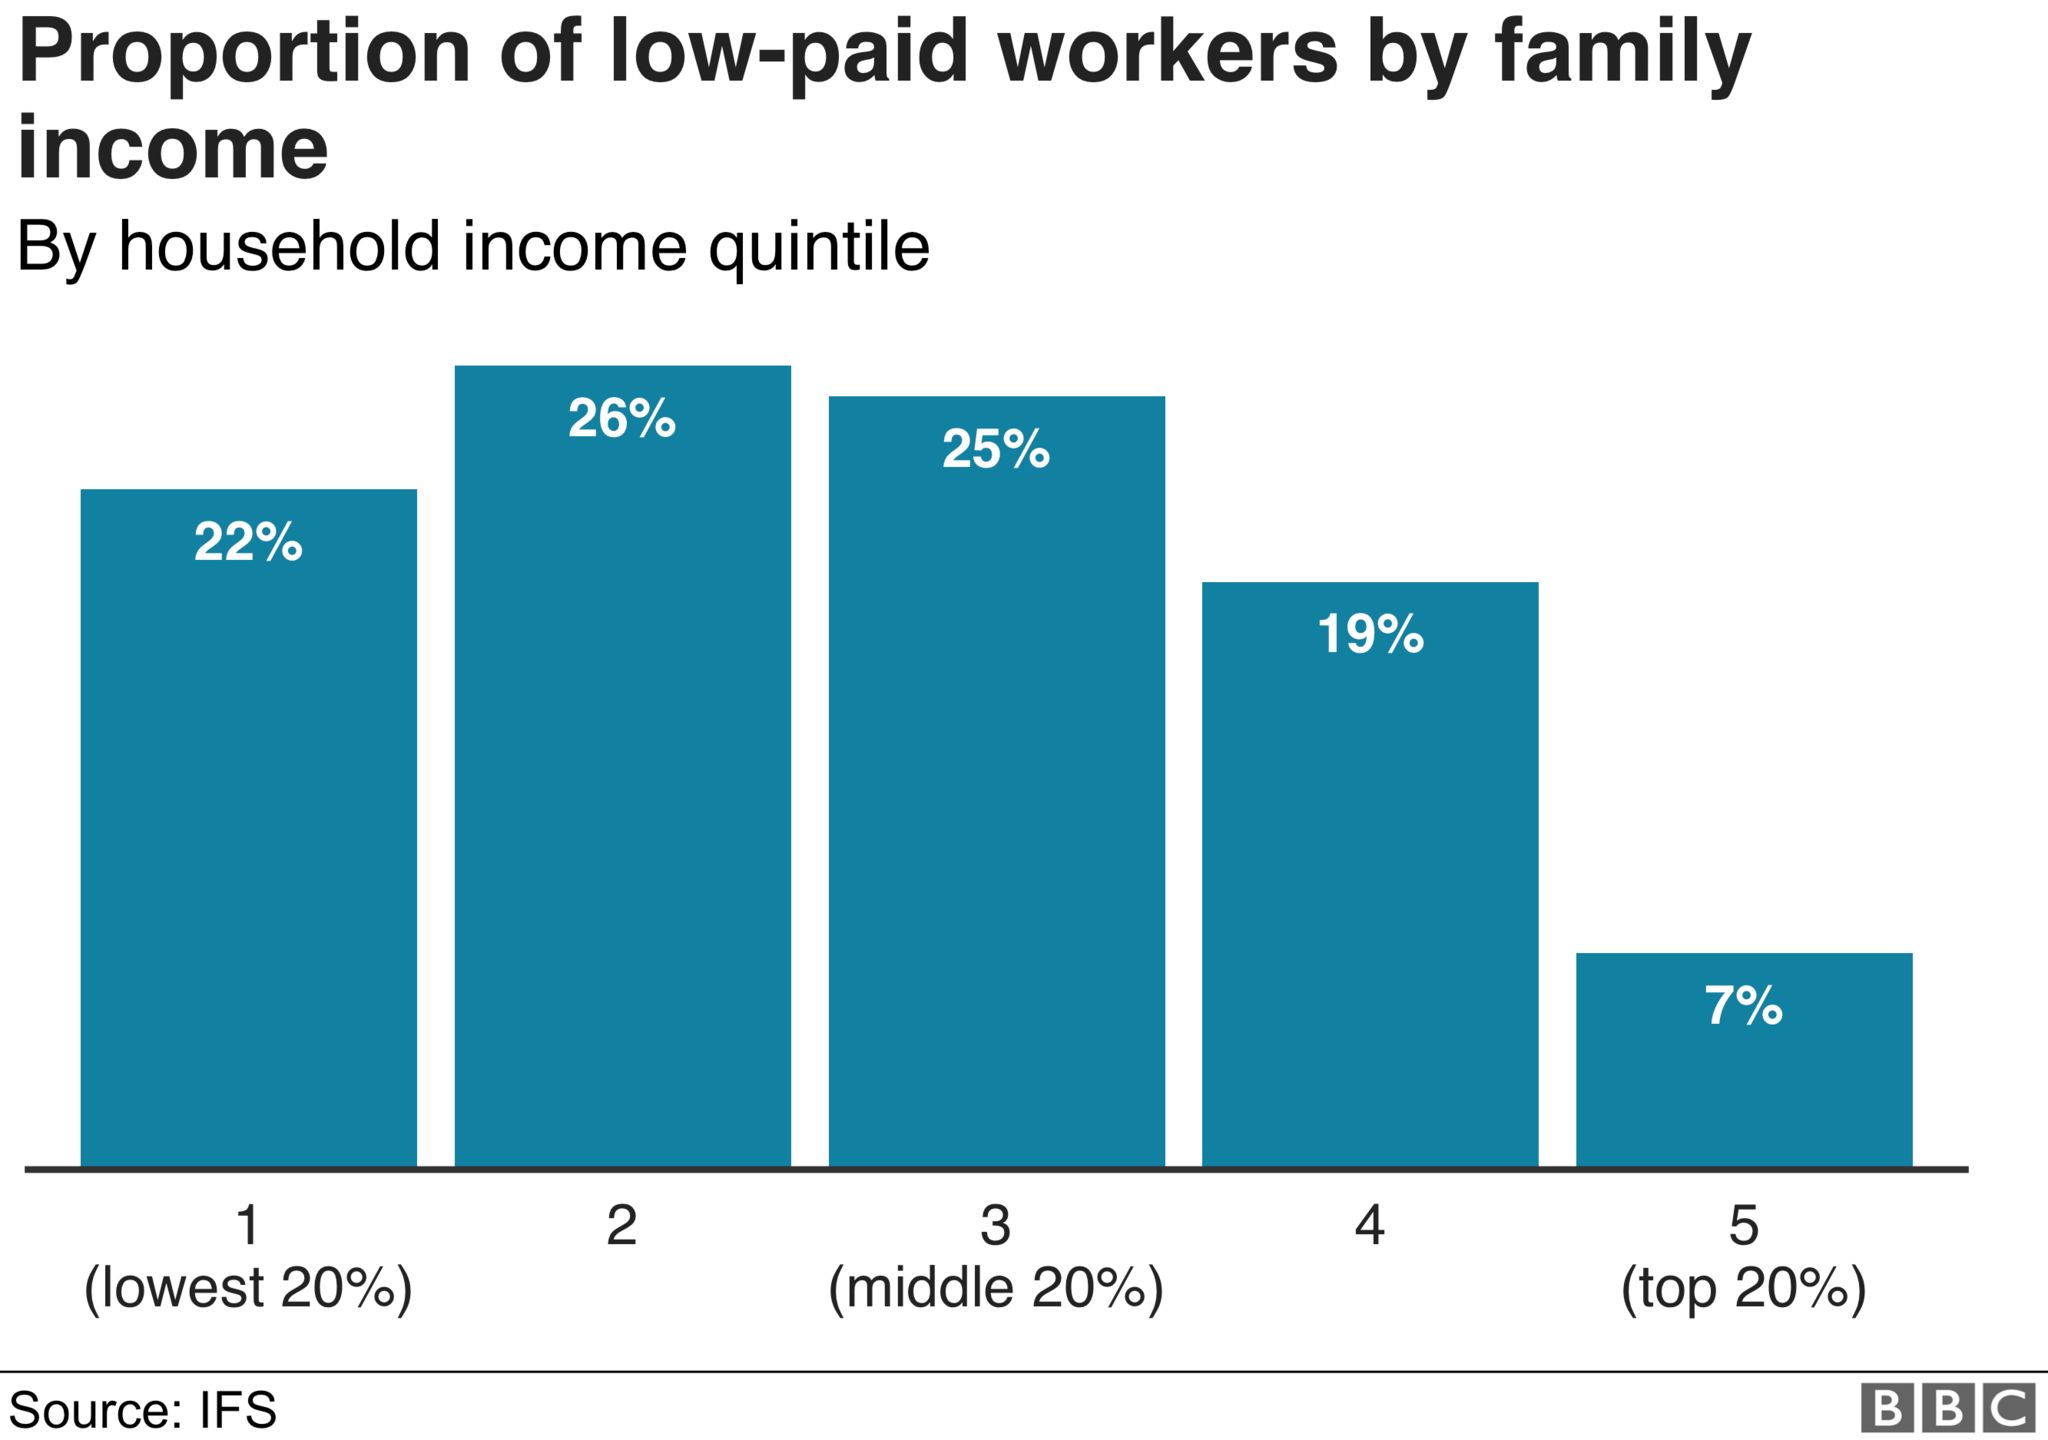 Proportion of low-paid workers by family income